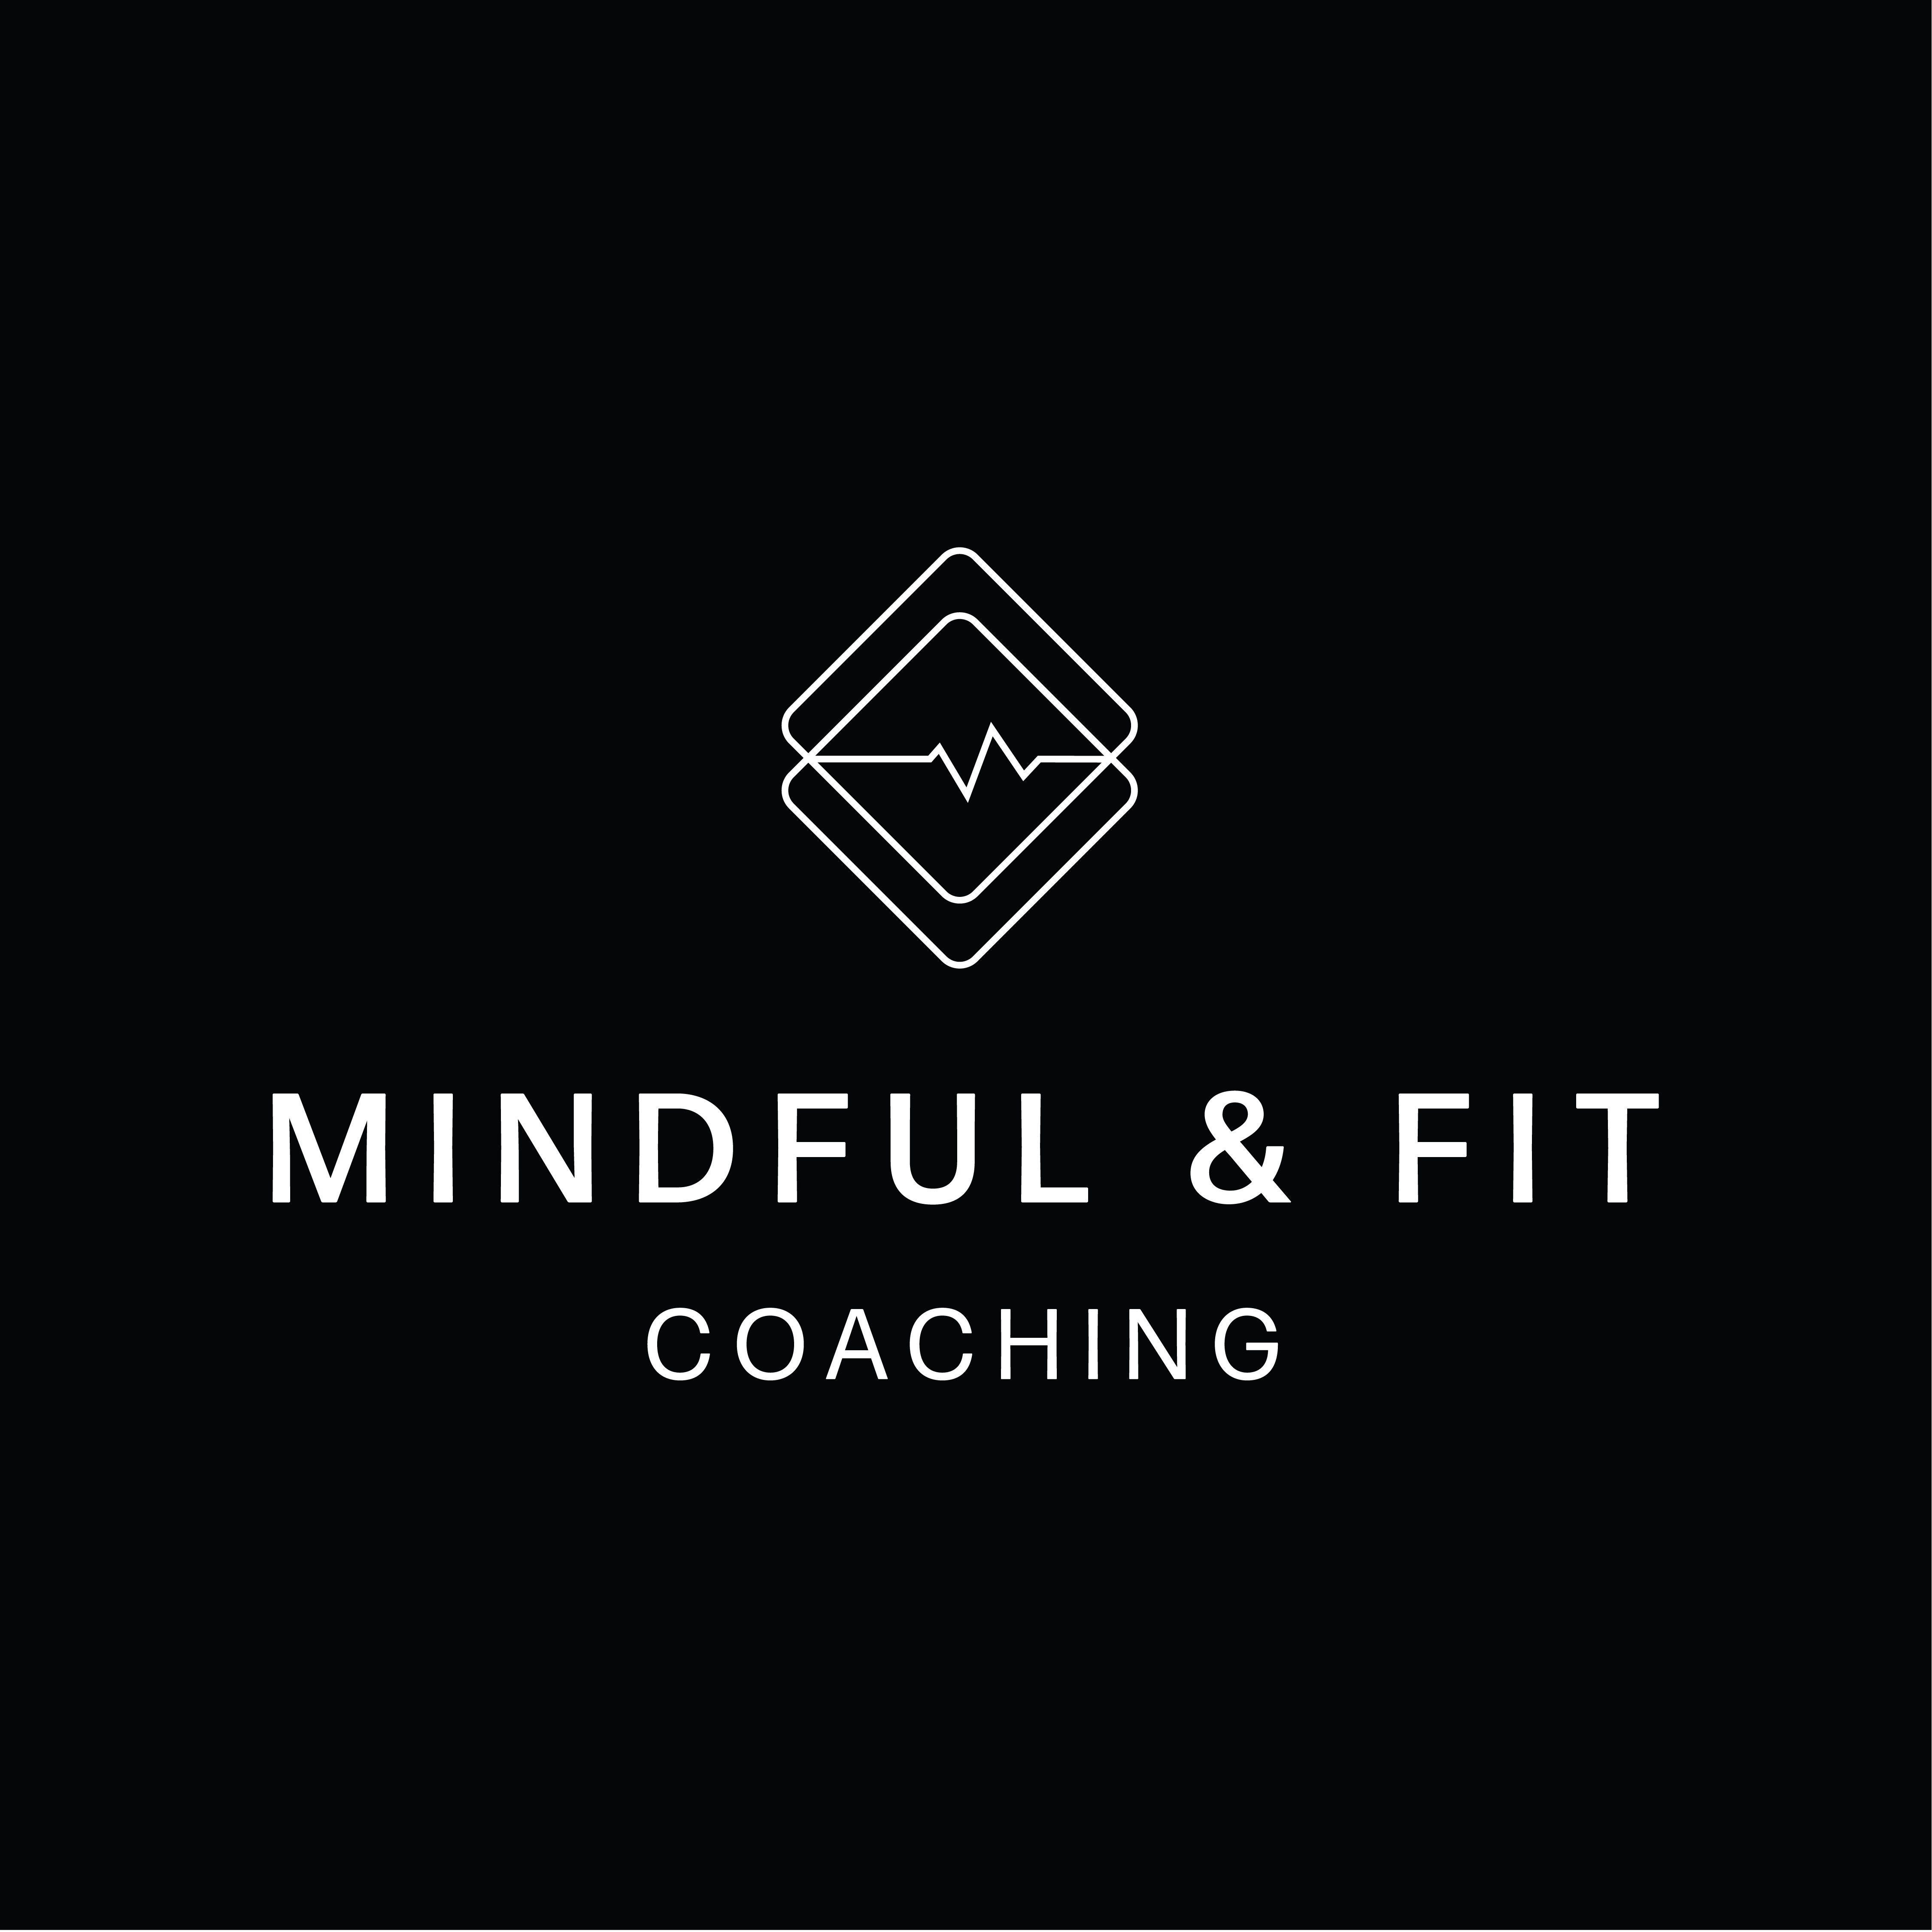 Logo design for personal trainer, personal trainer brand